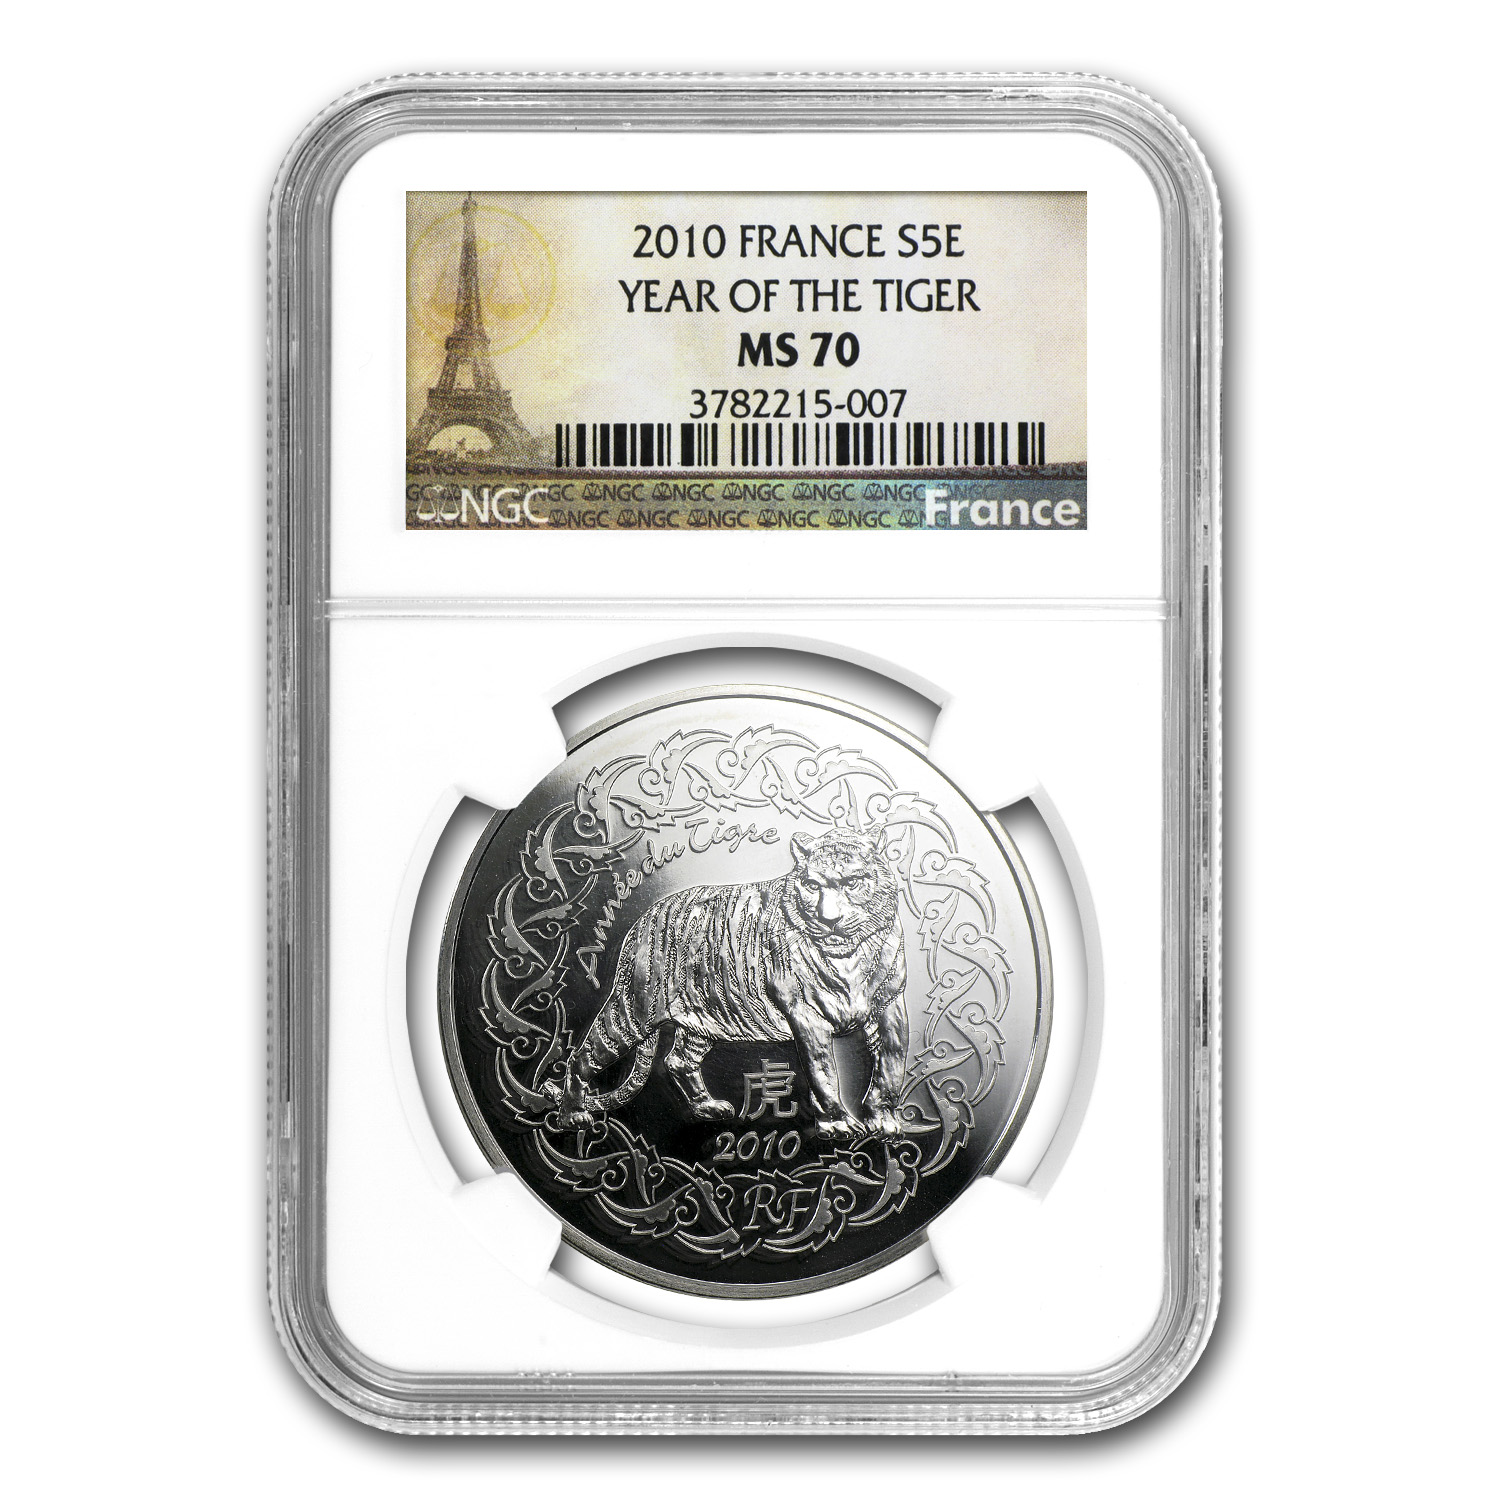 2010 France Silver €5 Year of the Tiger MS-70 NGC (Lunar Series)